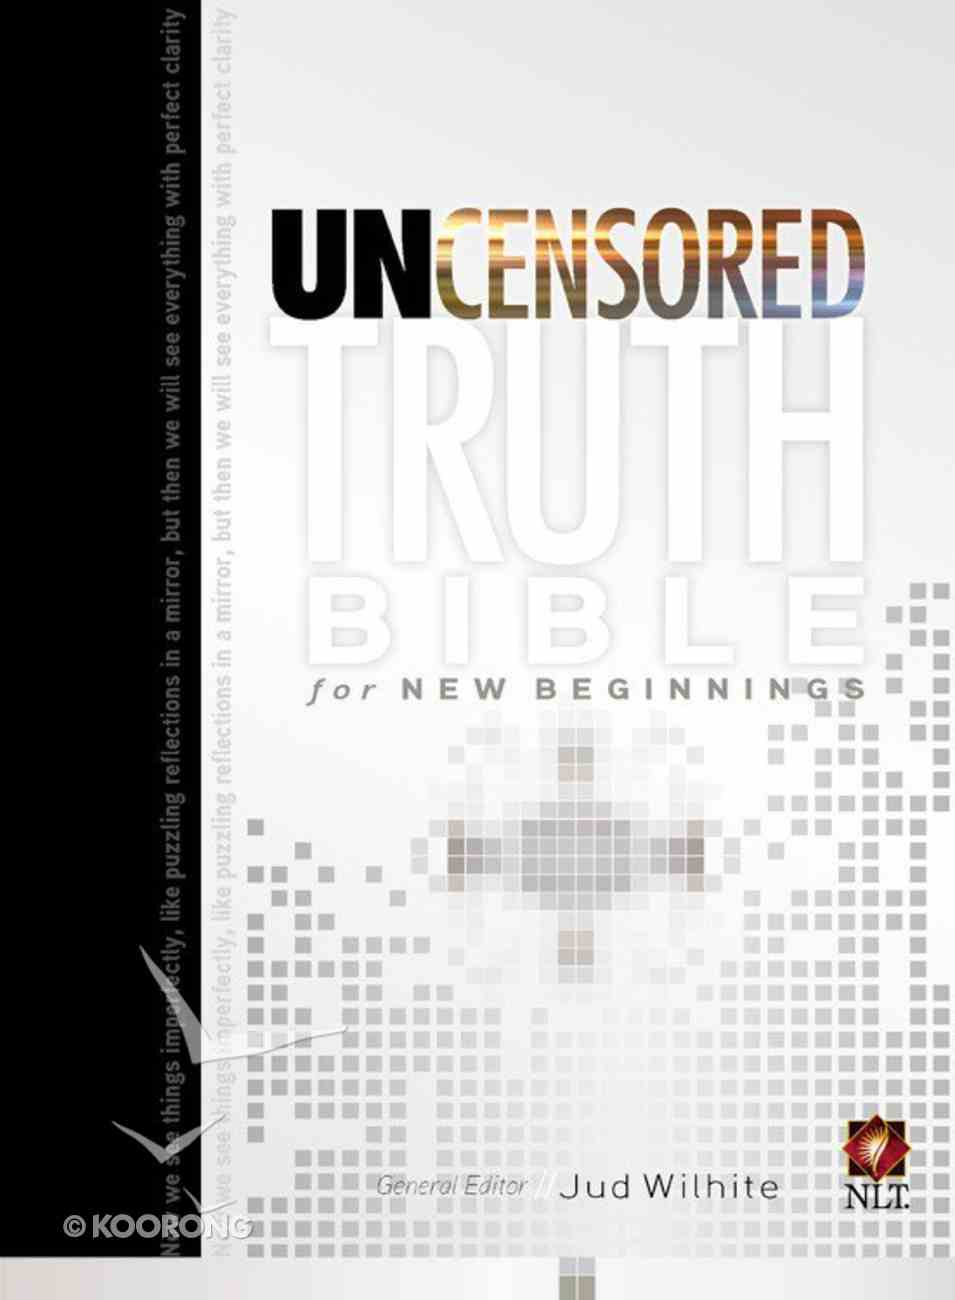 The NLT Uncensored Truth Bible For New Beginnings Paperback